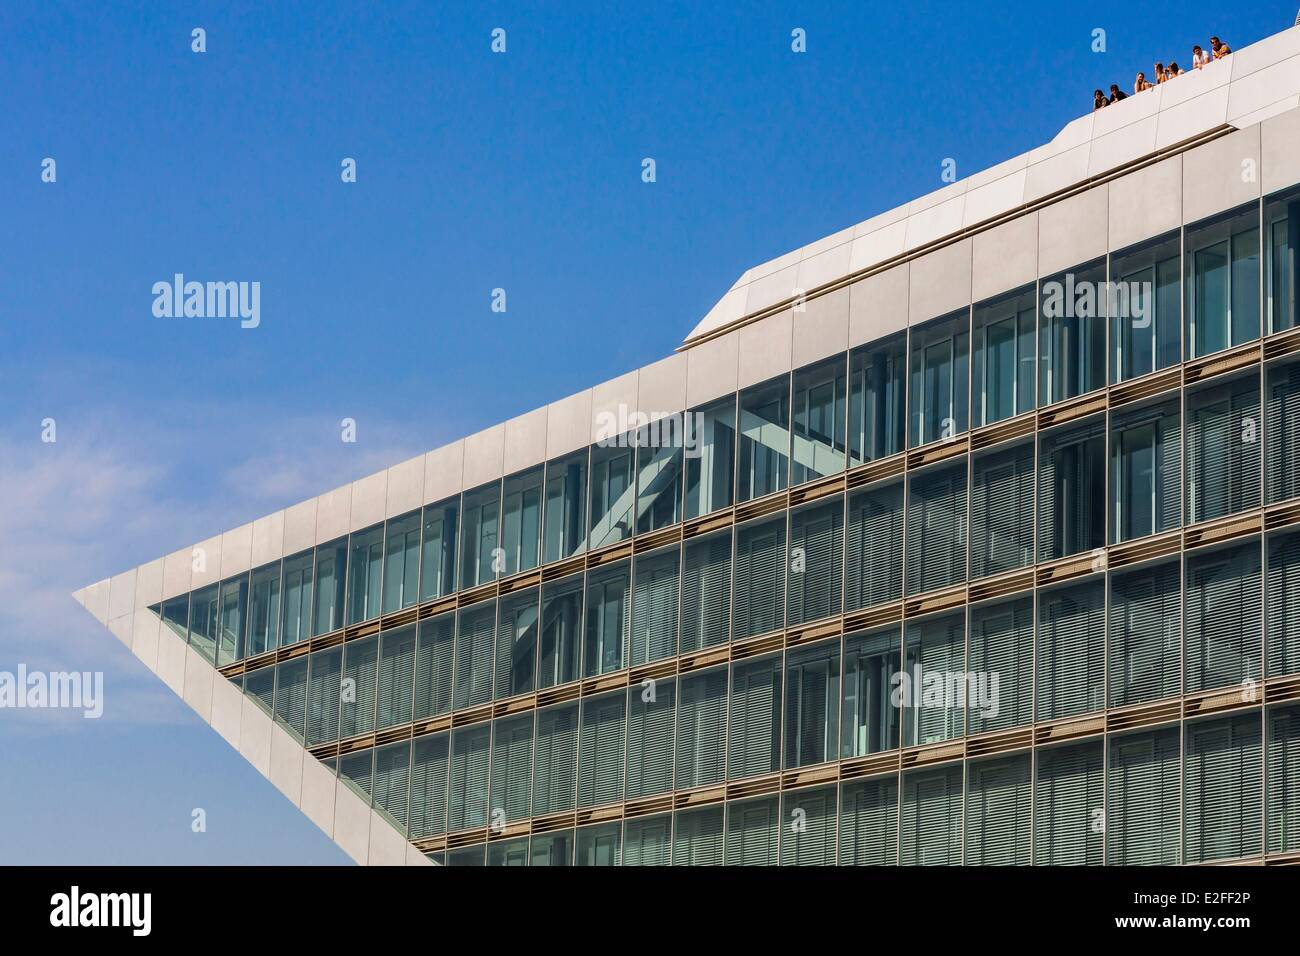 Architekten stockfotos architekten bilder alamy - Architekten deutschland ...